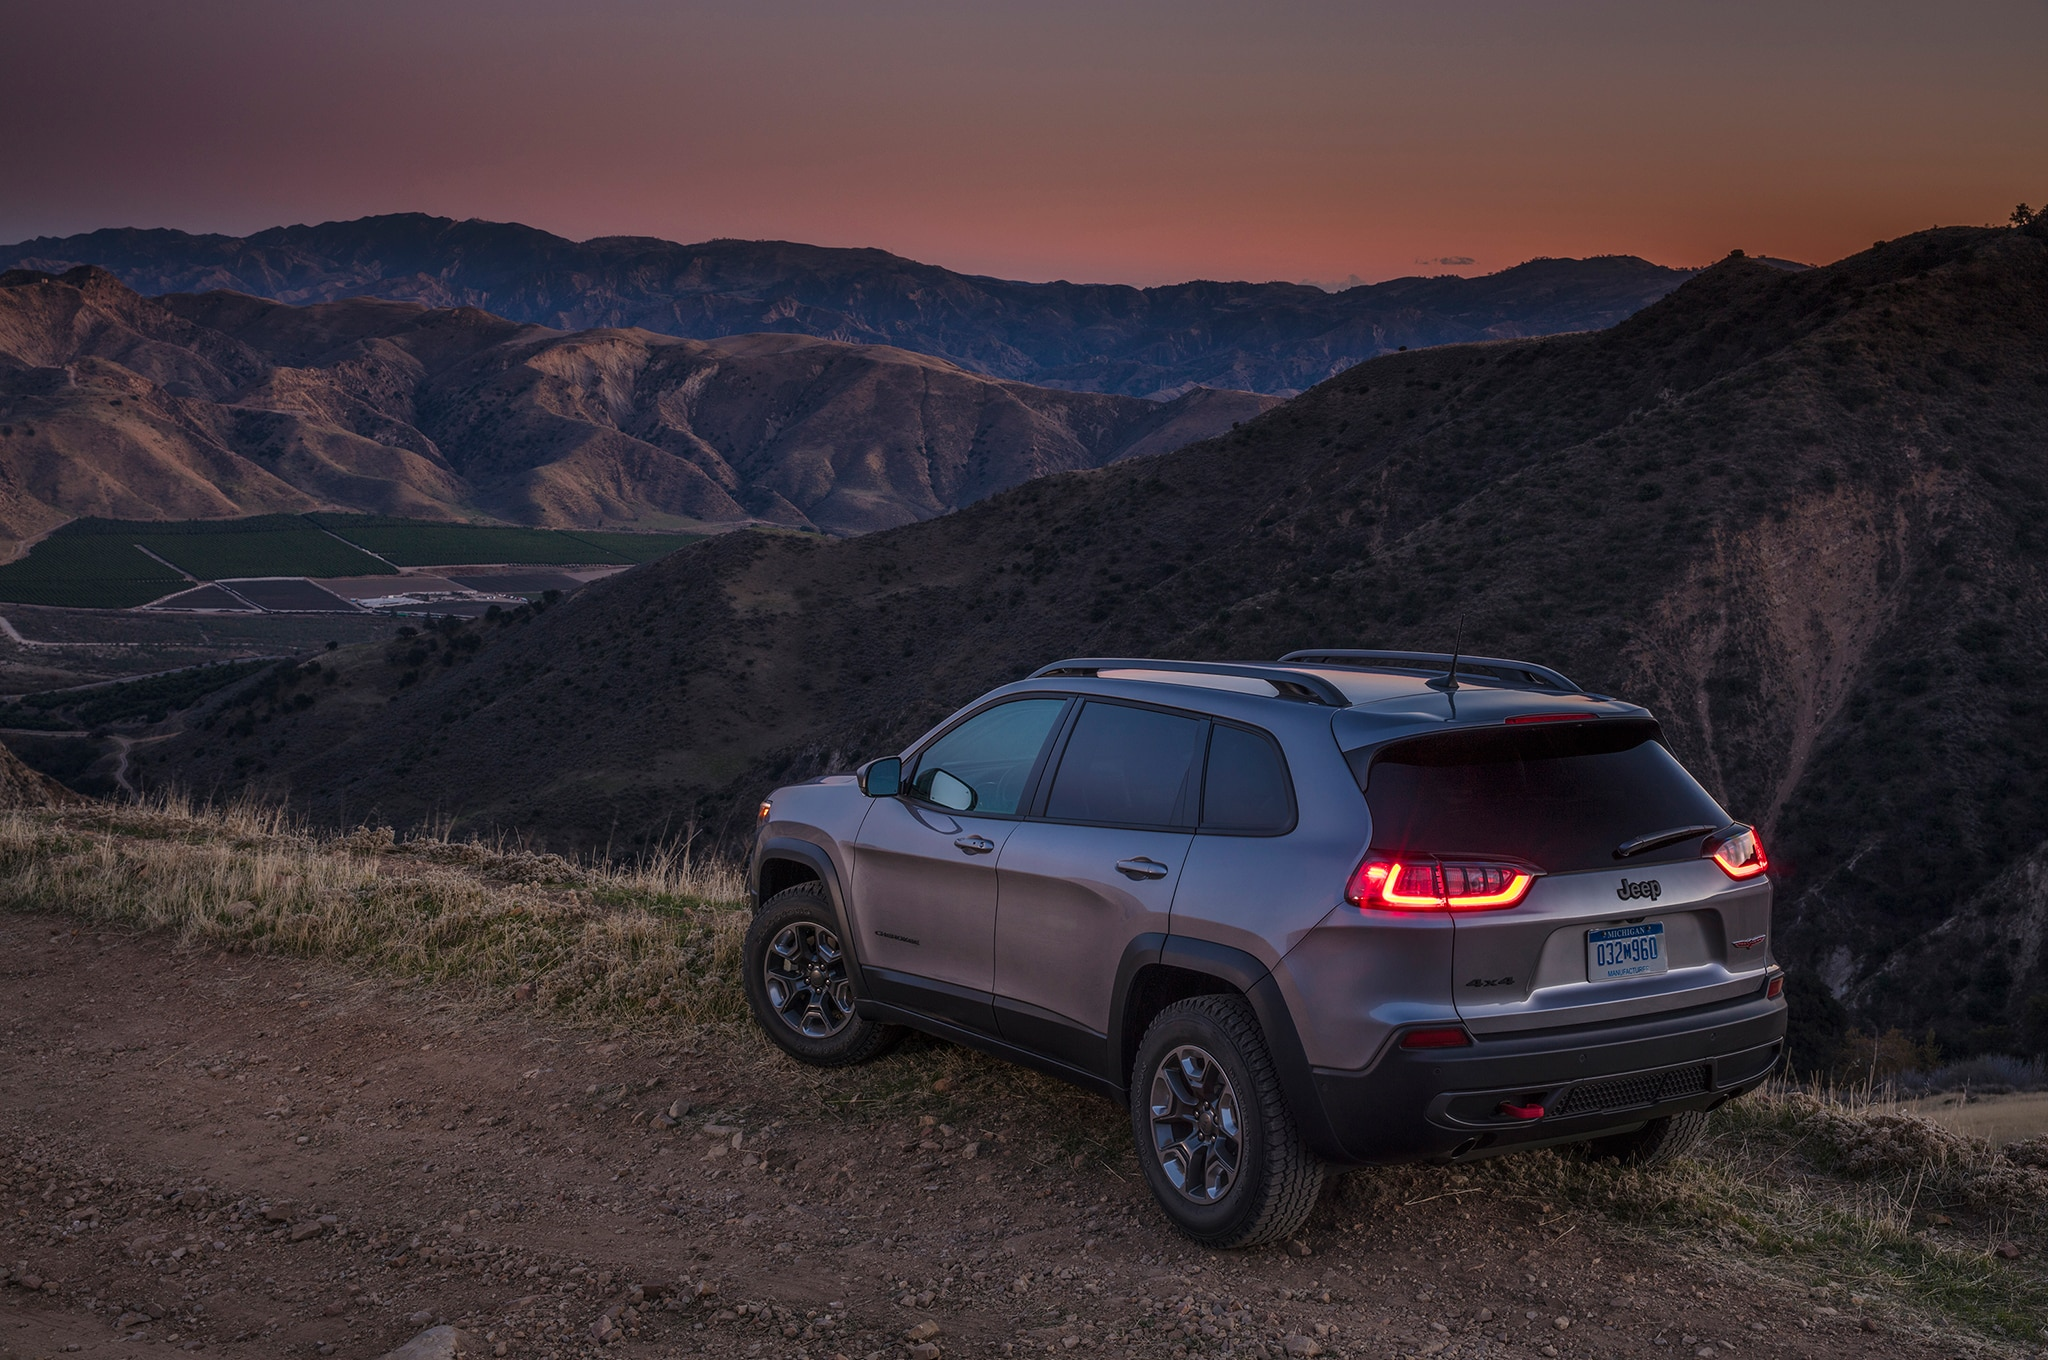 2019 Jeep Cherokee Overland 4x4 One Week Review ...